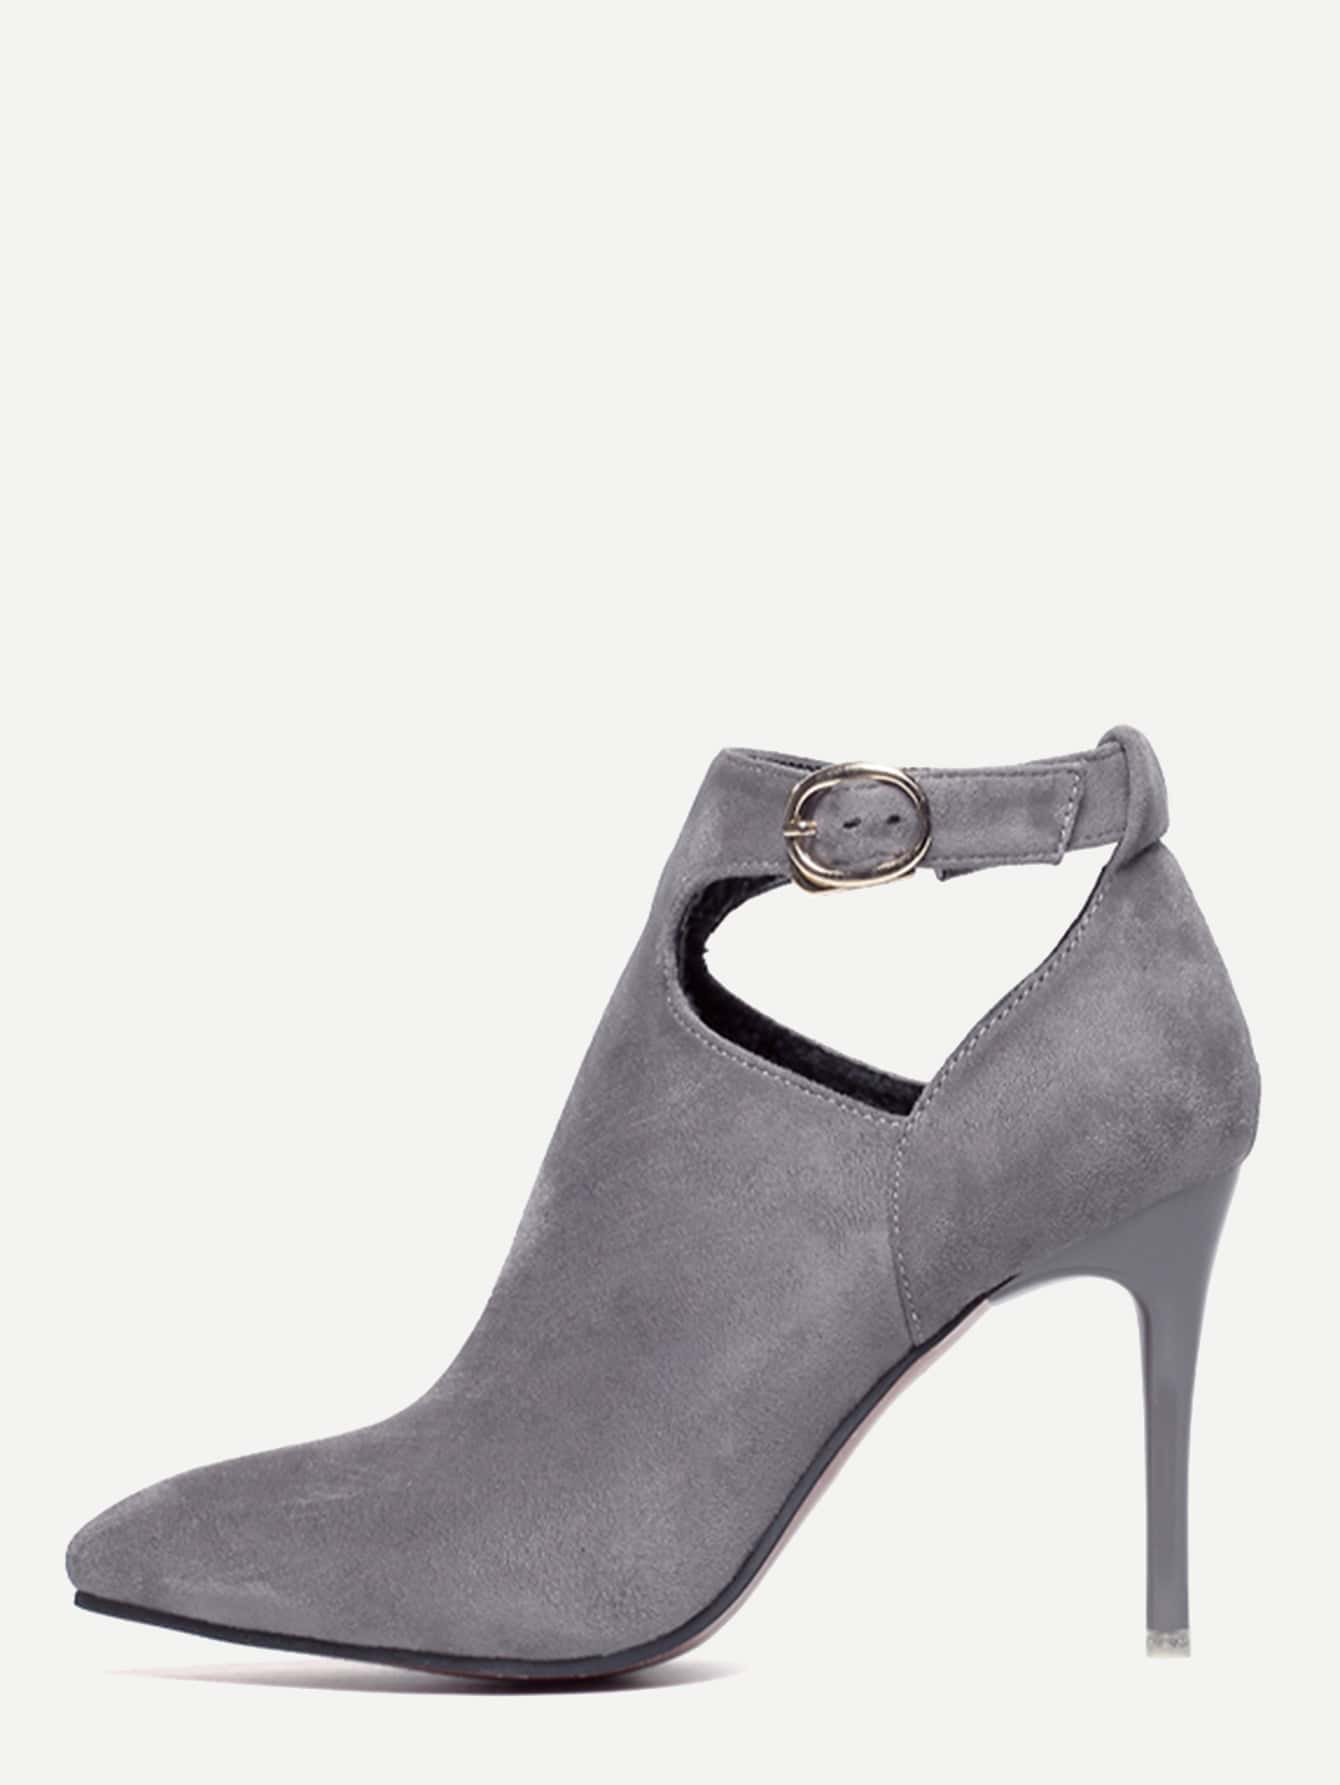 Grey Faux Suede Pointed Toe Ankle Strap PumpsGrey Faux Suede Pointed Toe Ankle Strap Pumps<br><br>color: Grey<br>size: EUR35